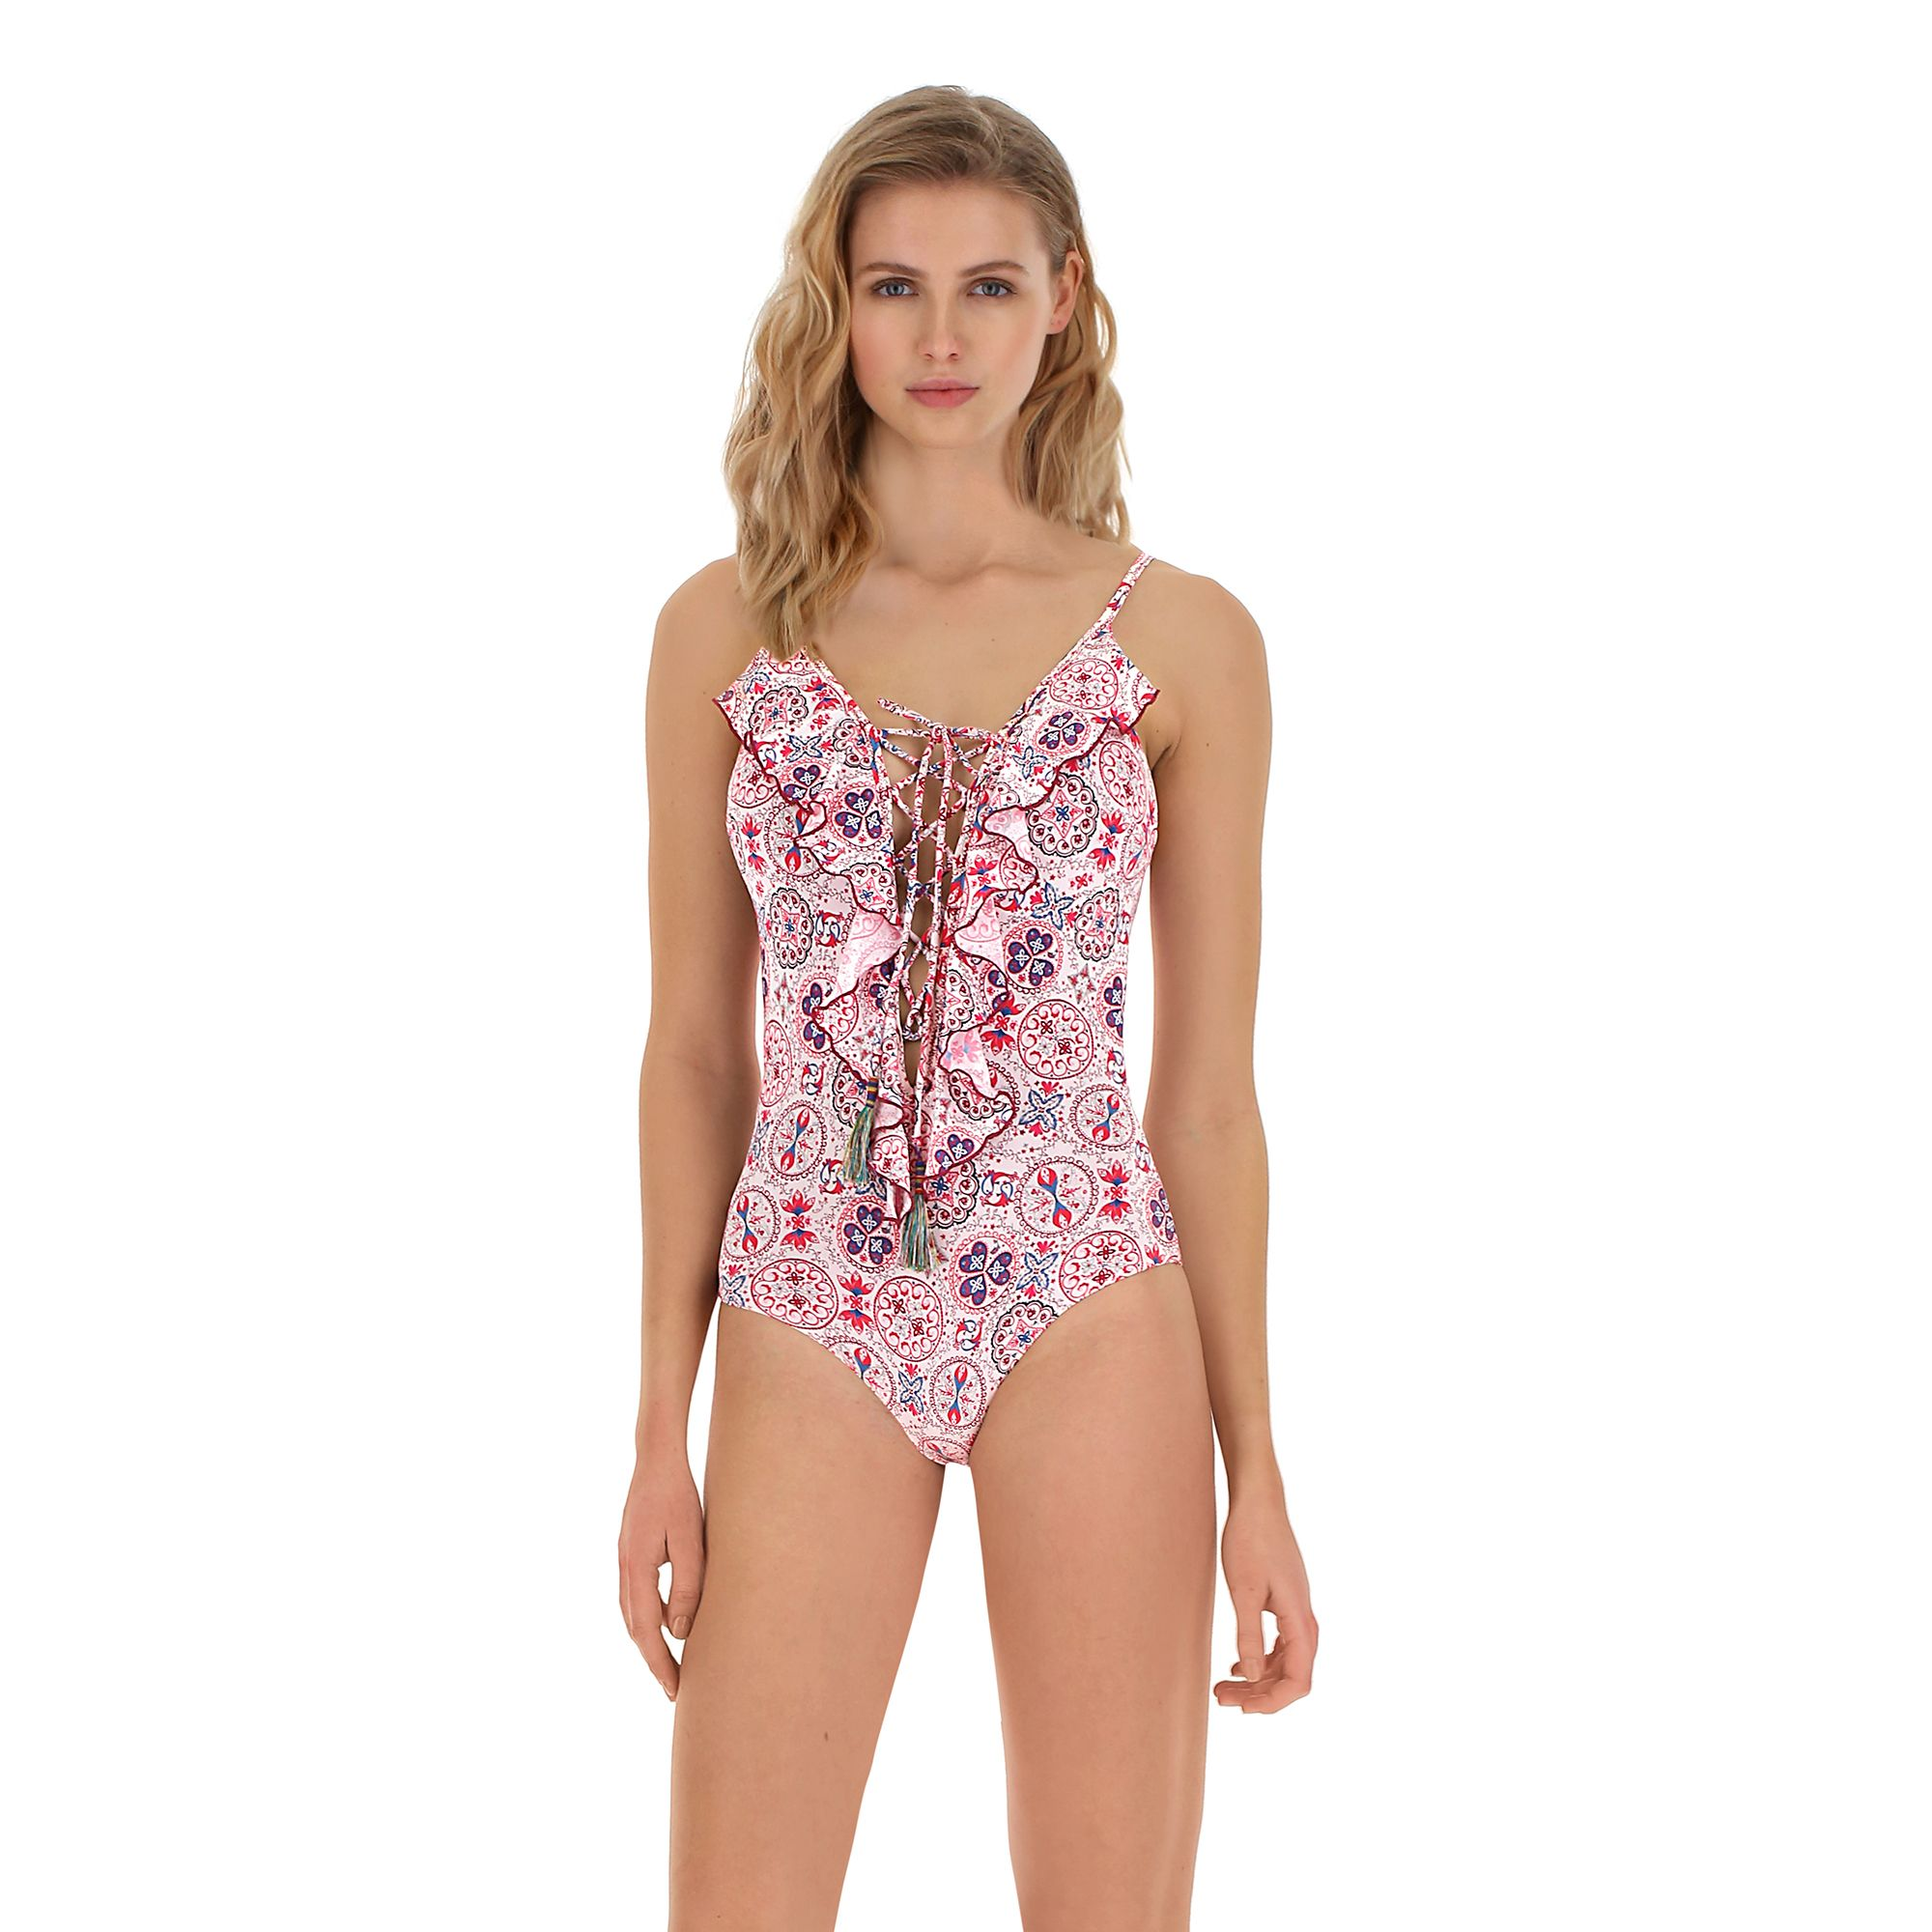 Costume intero con ruches Goldenpoint a 69,99 euro